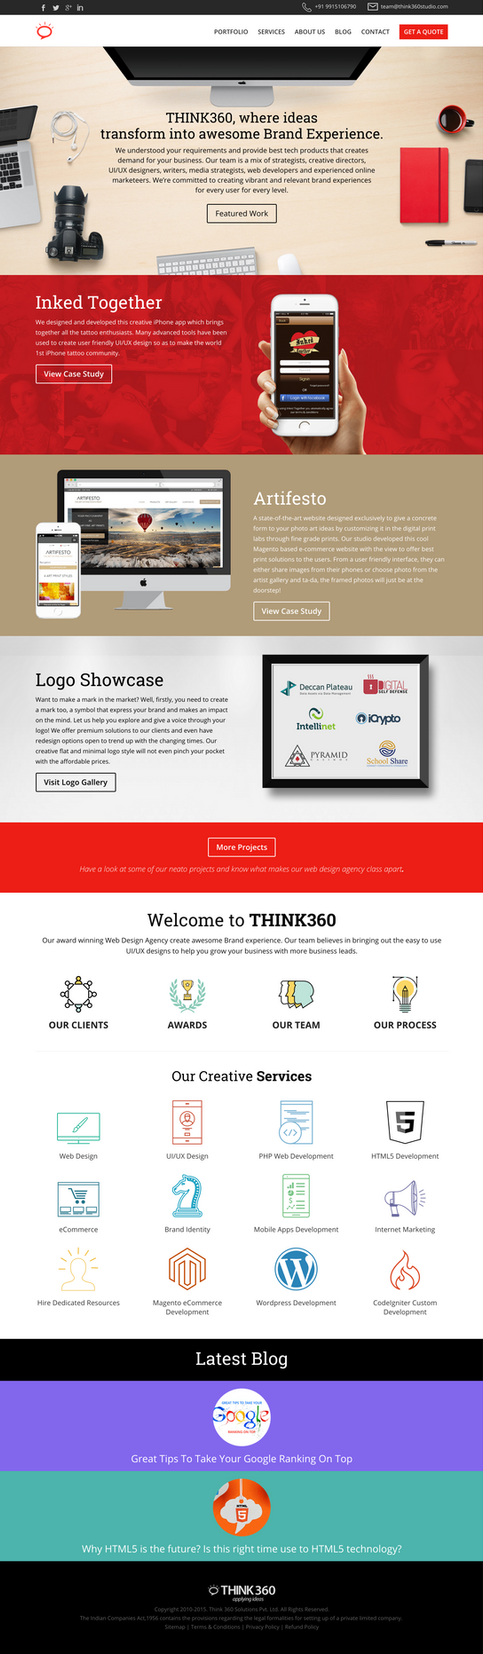 Think360Studio A UI/UX and Web Design Agency India by princepal